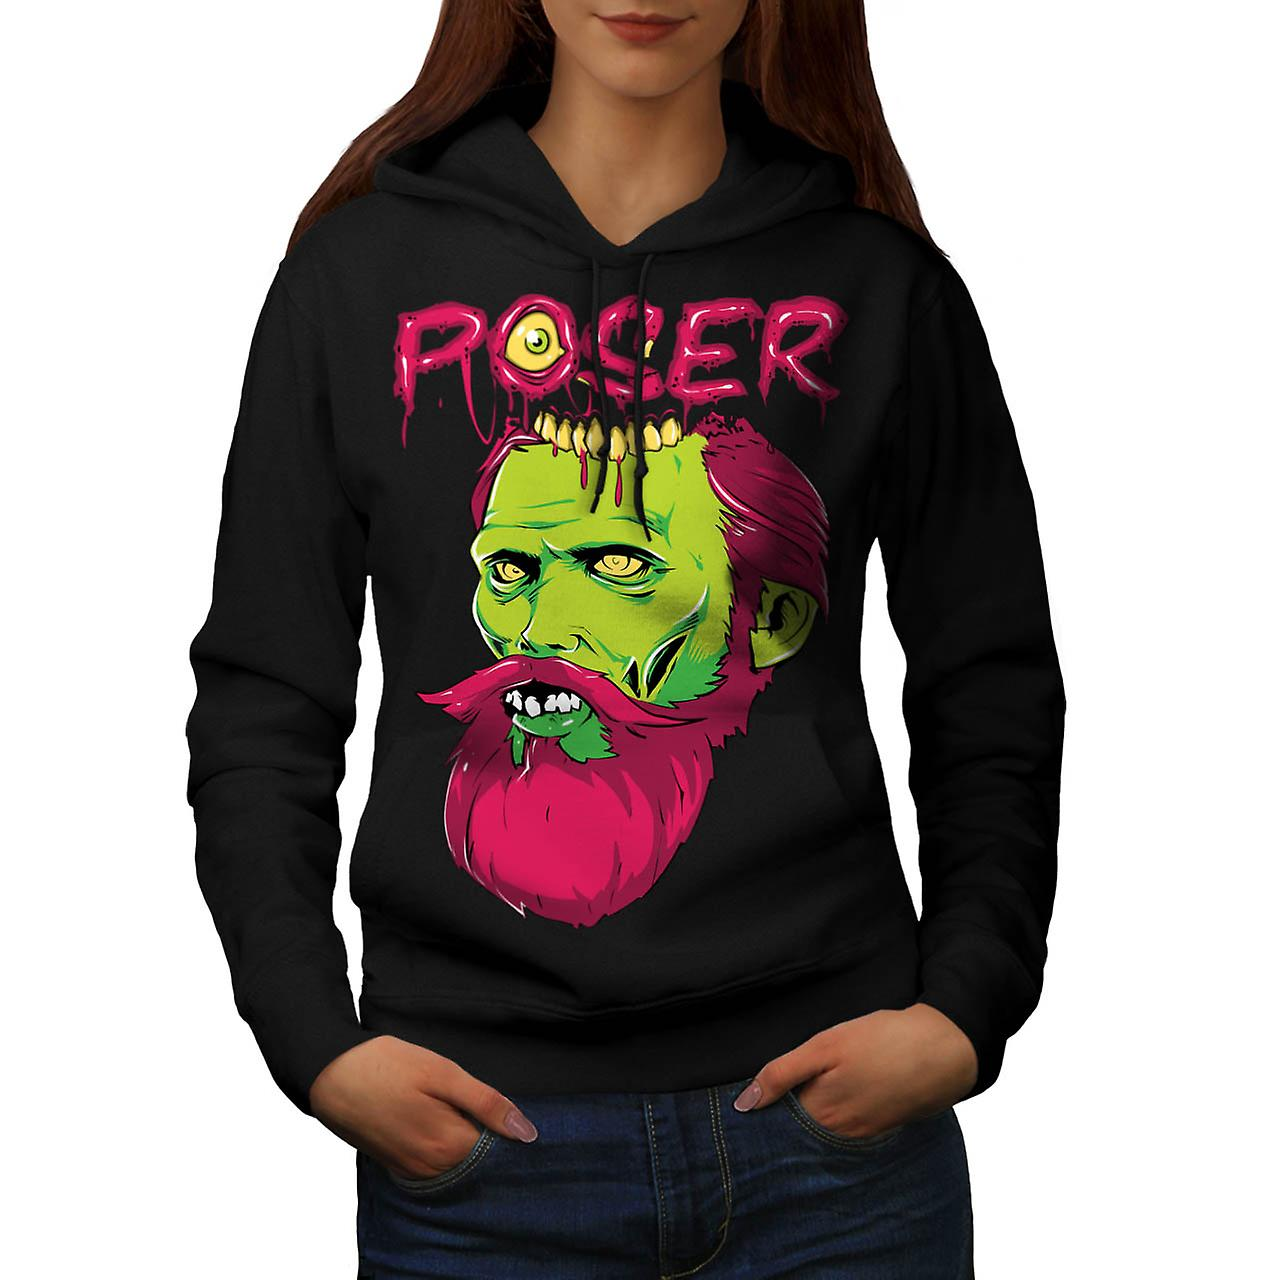 Poser Monster Rock Zombie Women Black Hoodie | Wellcoda